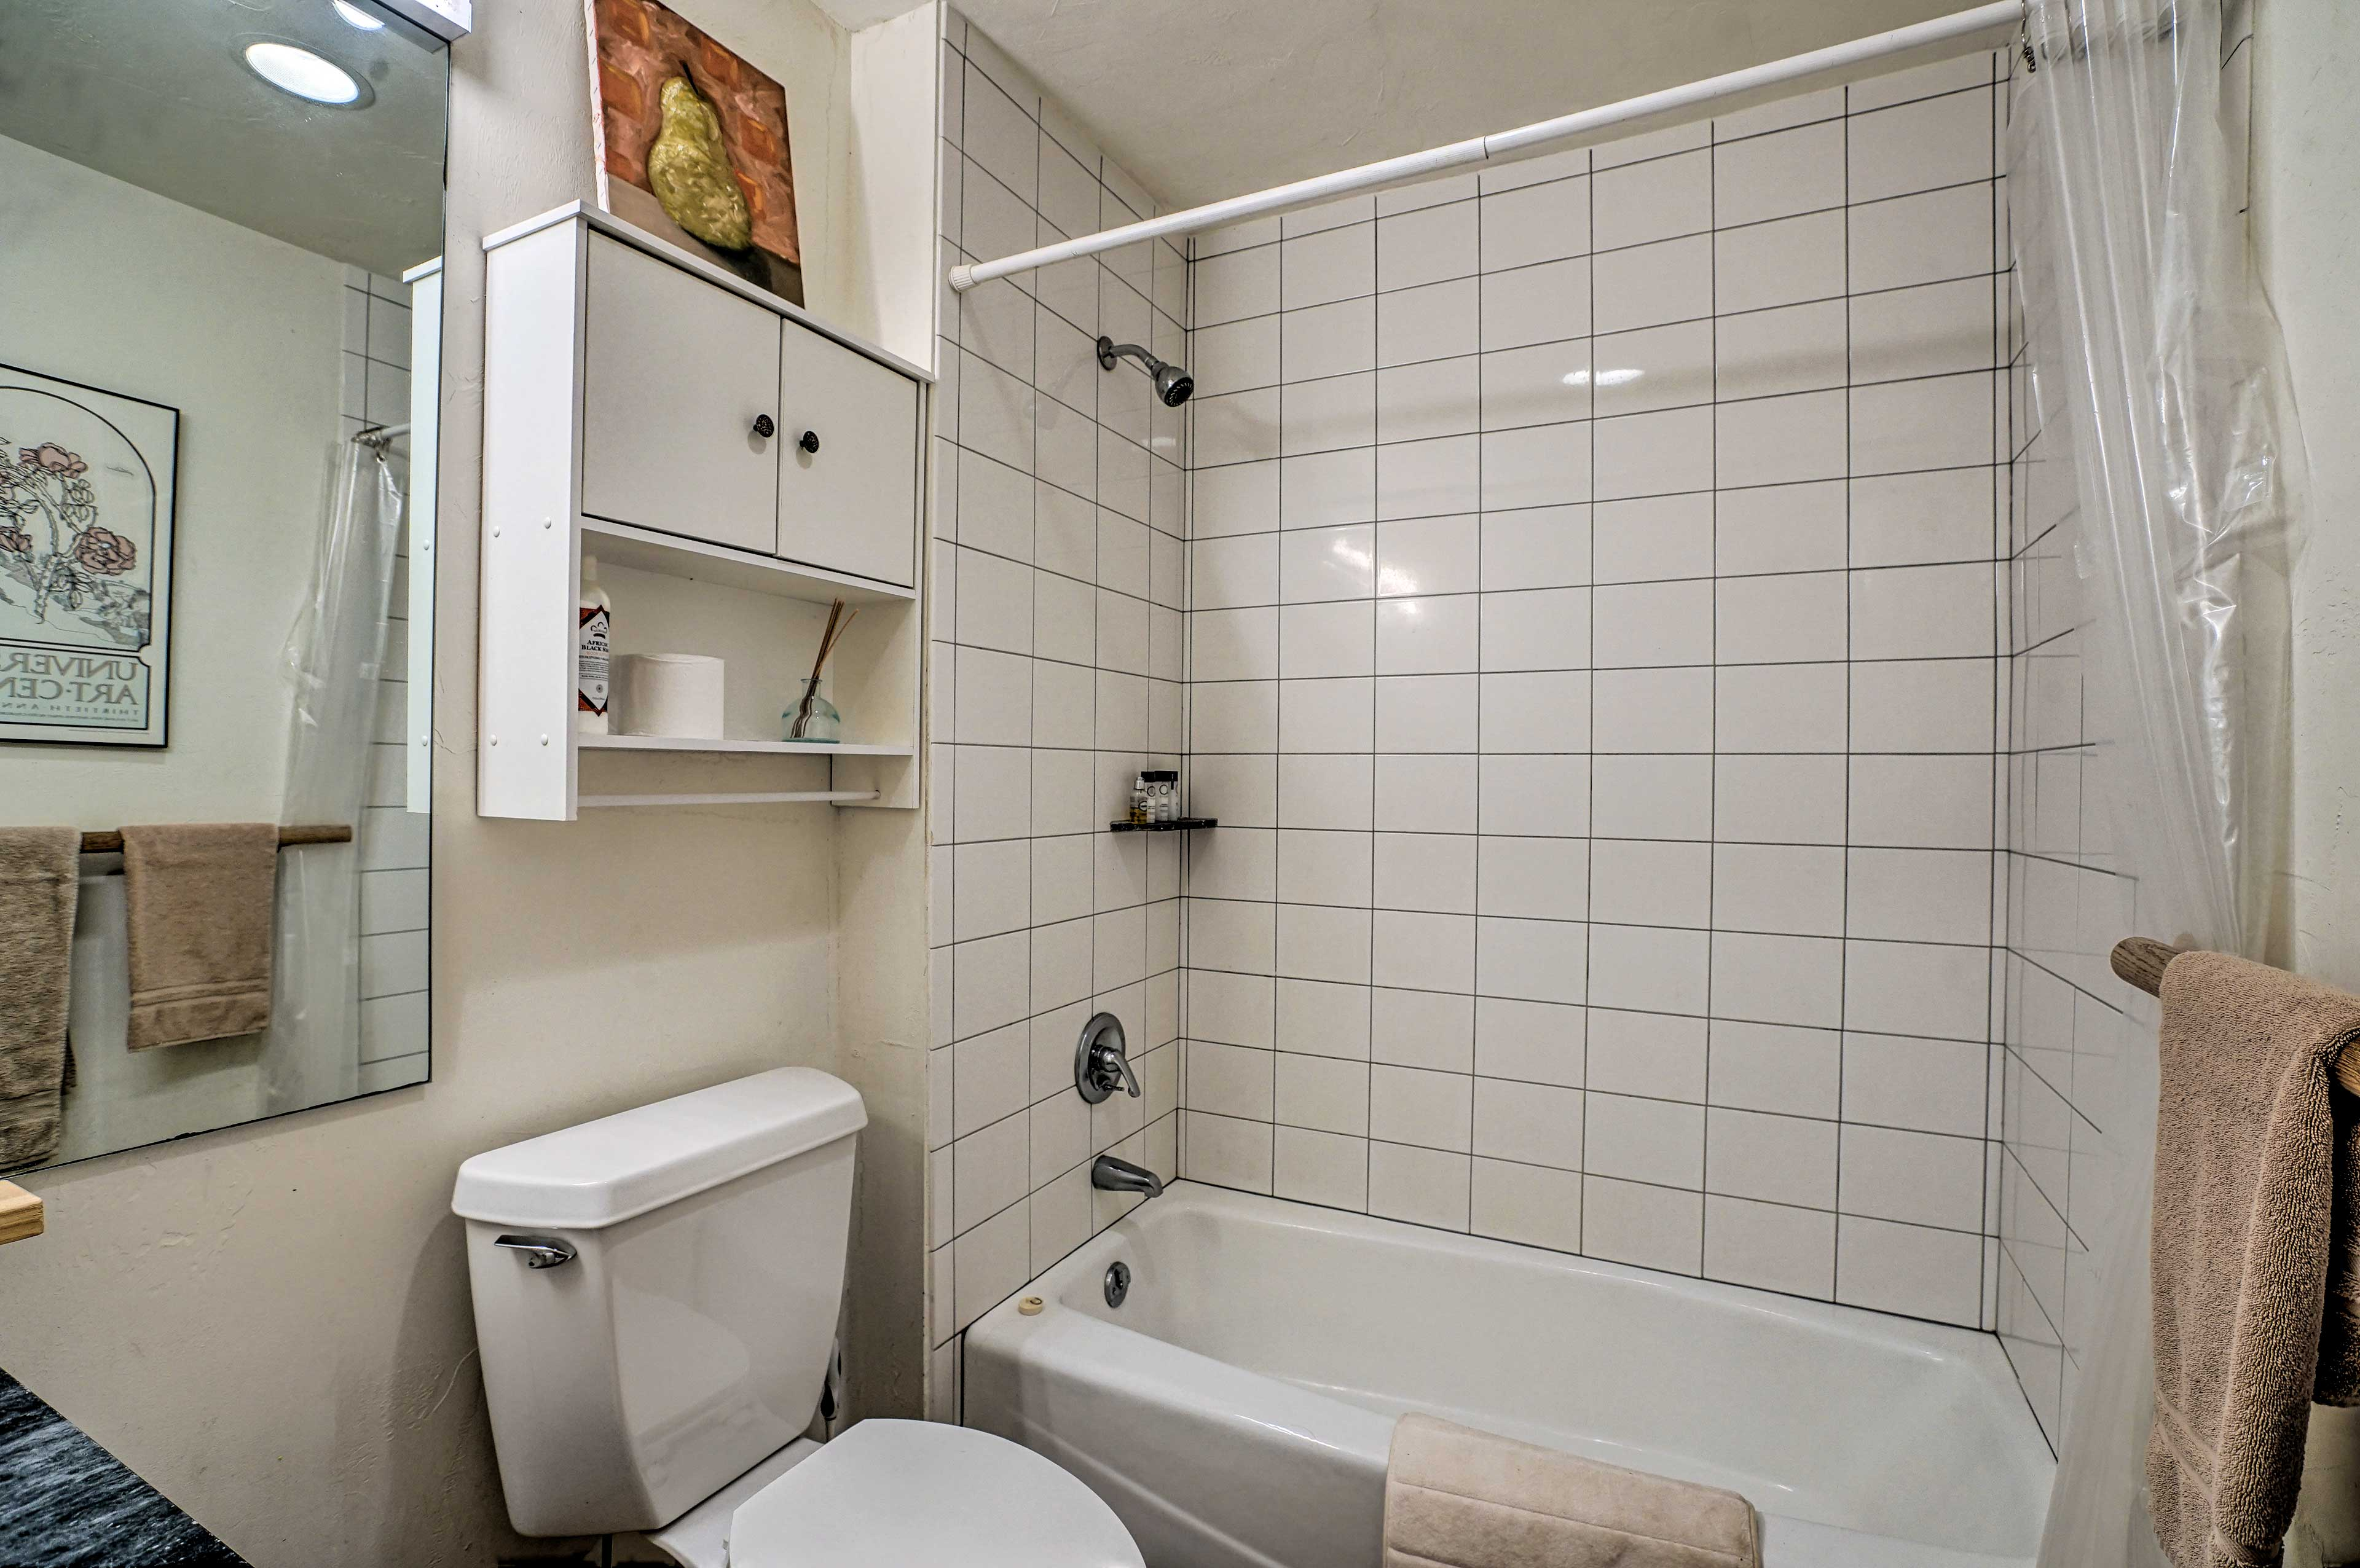 This vacation rental features 1 full bathroom!